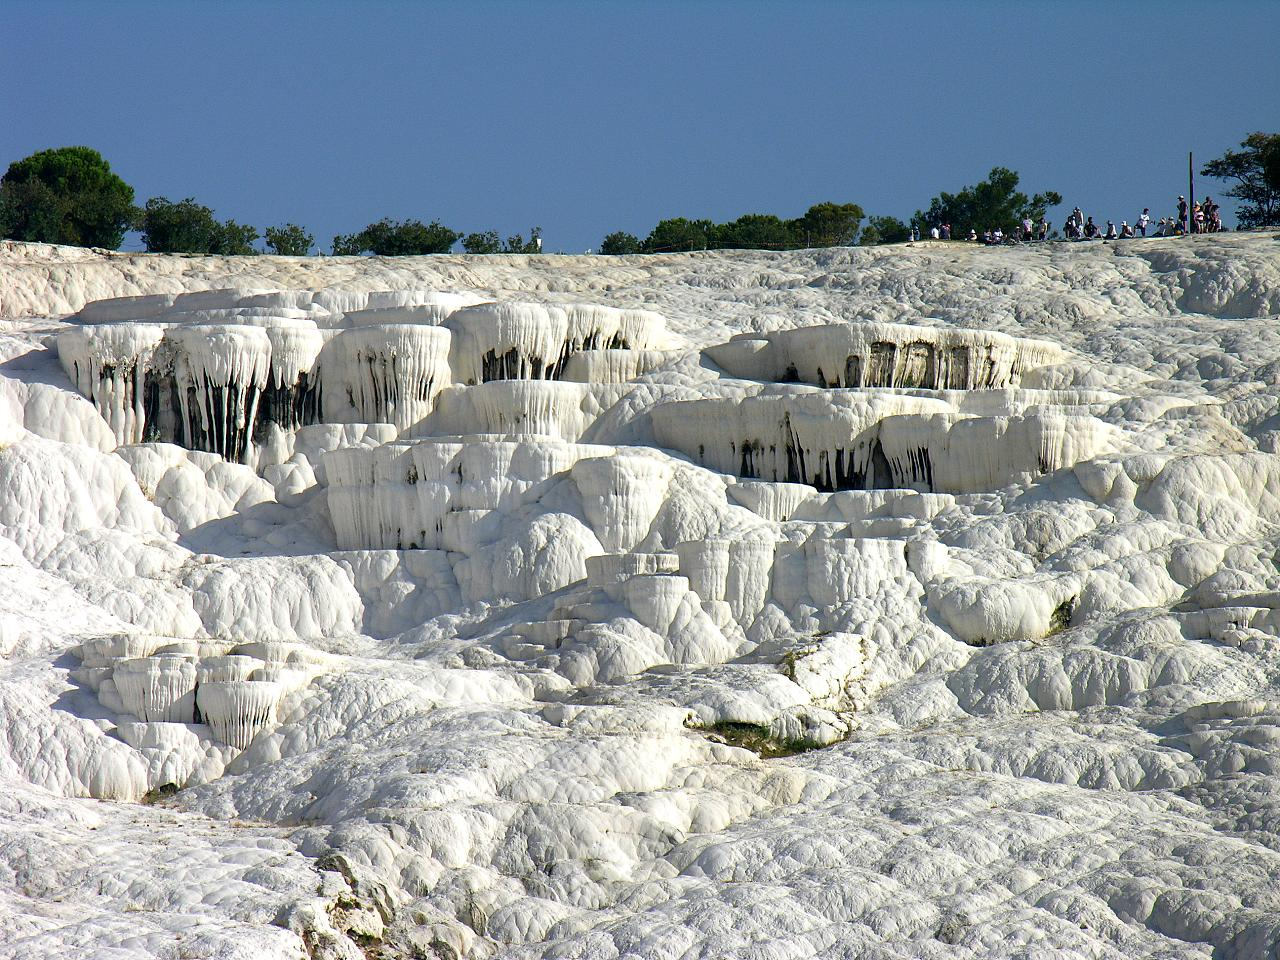 File:Pamukkale, Turkey.jpg - Wikimedia Commons